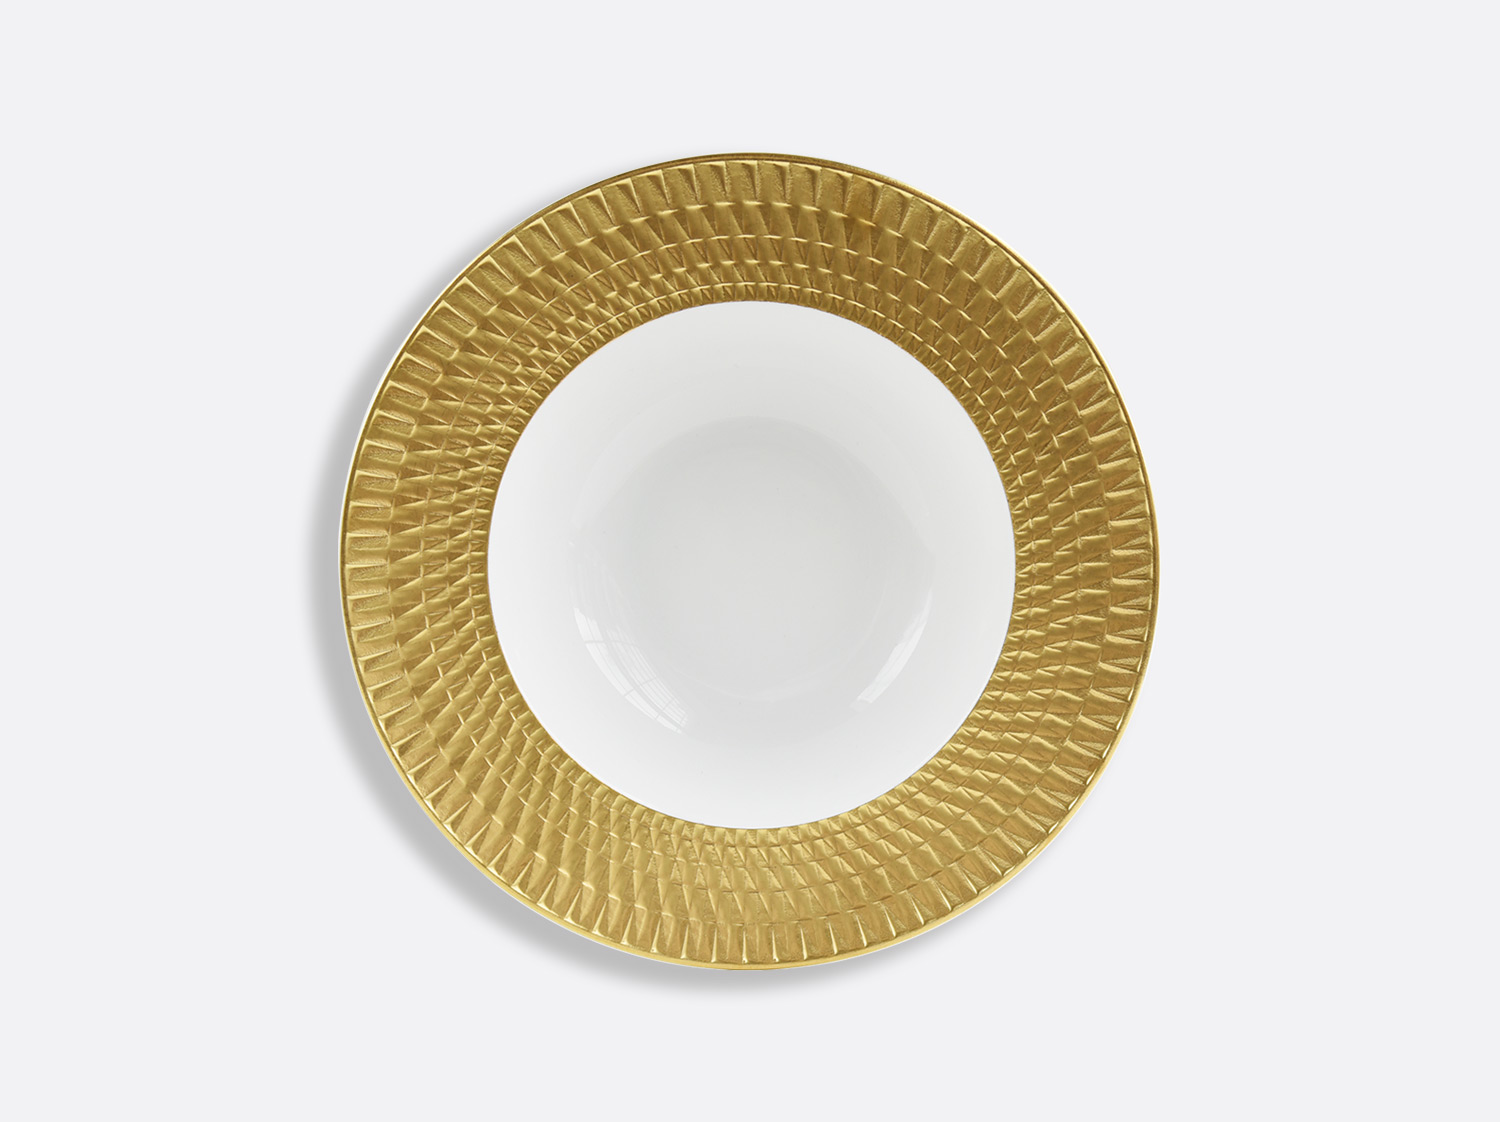 Assiette creuse à aile 22,5 cm en porcelaine de la collection Twist or Bernardaud